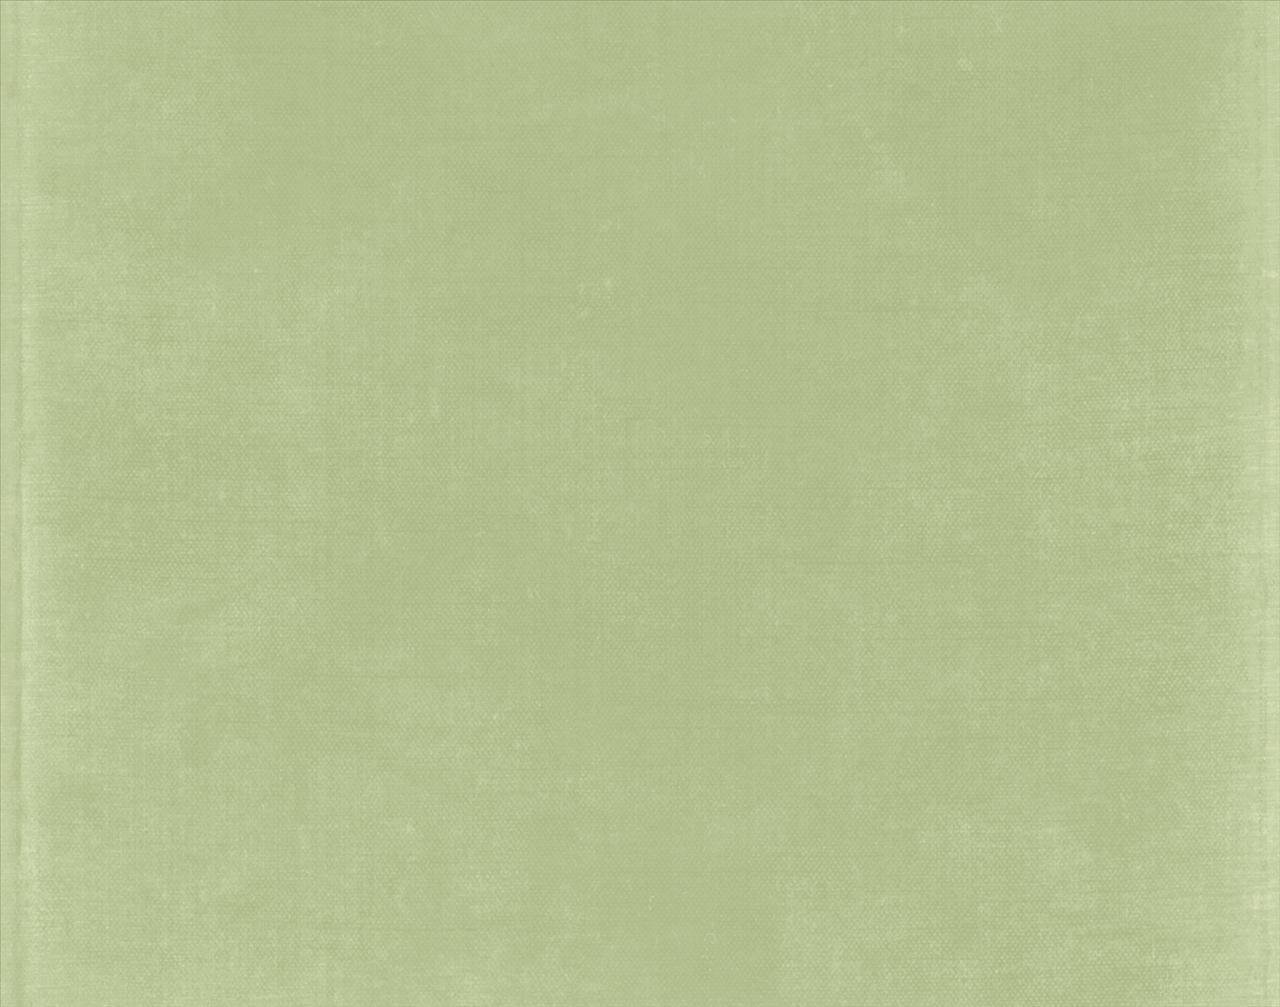 Sage green wallpaper wallpapersafari - What color is sage green ...